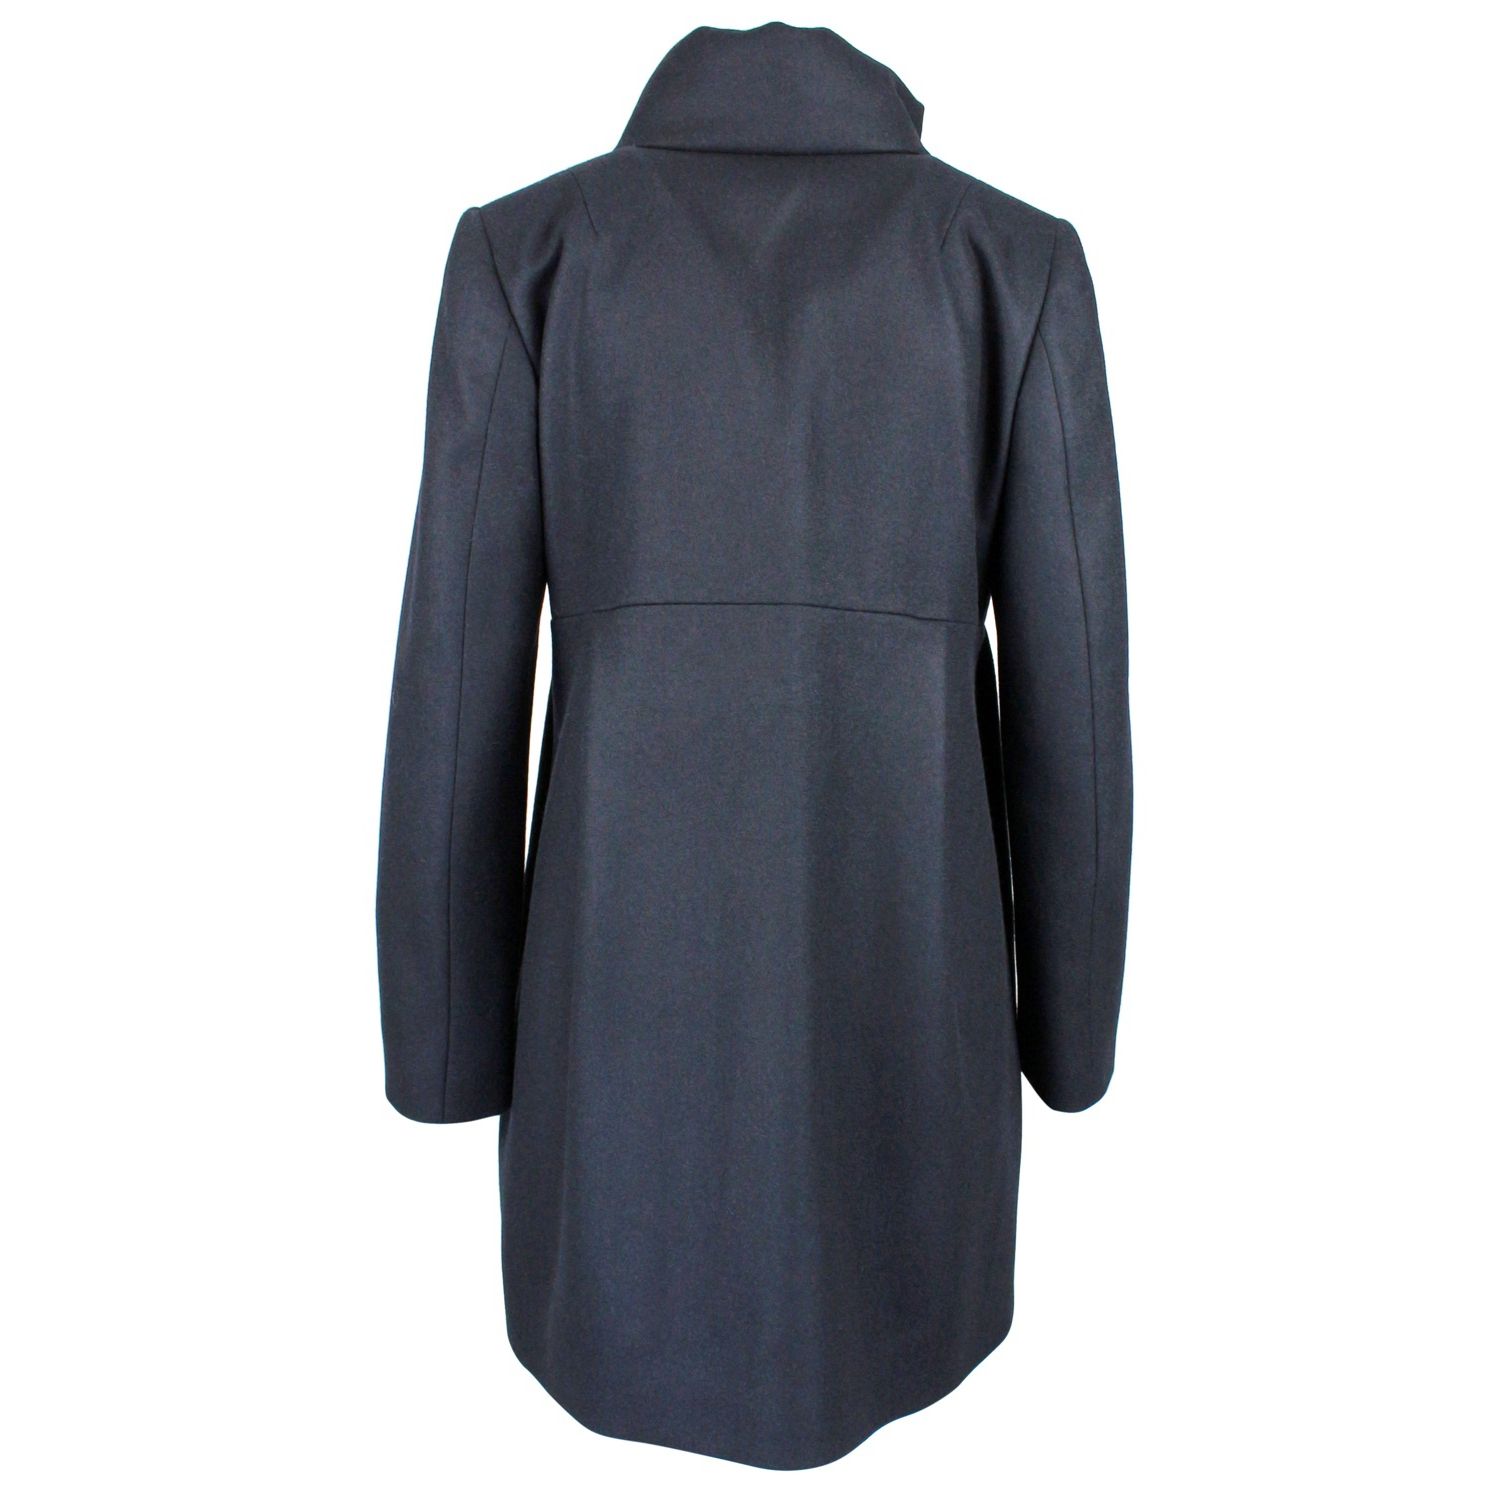 Shop Donna Fay Cappotto Online Fay 9IWbHE2YeD